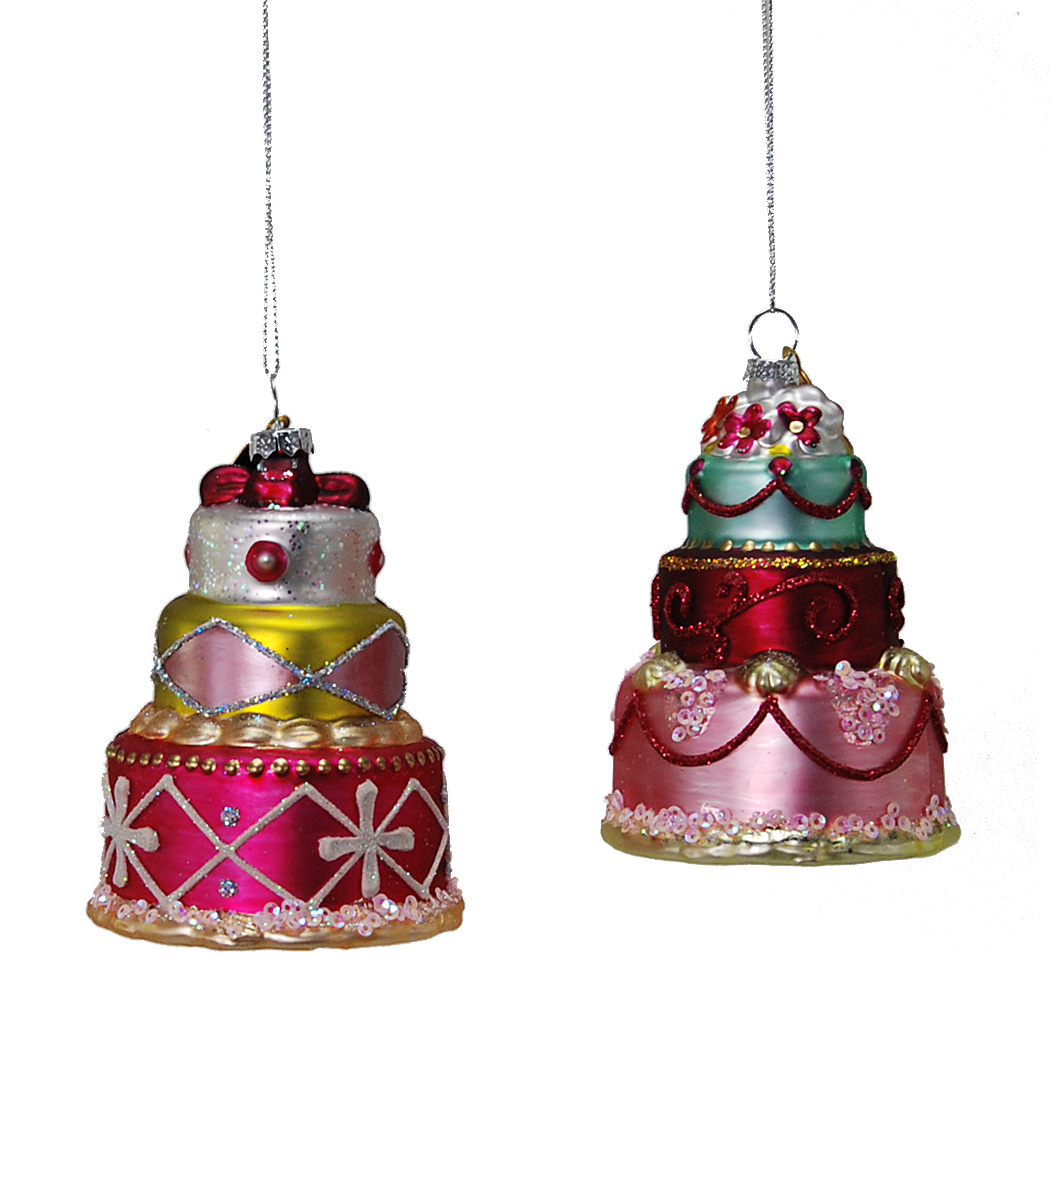 Cake Stack Ornament - Assortment Of 2  22-524714